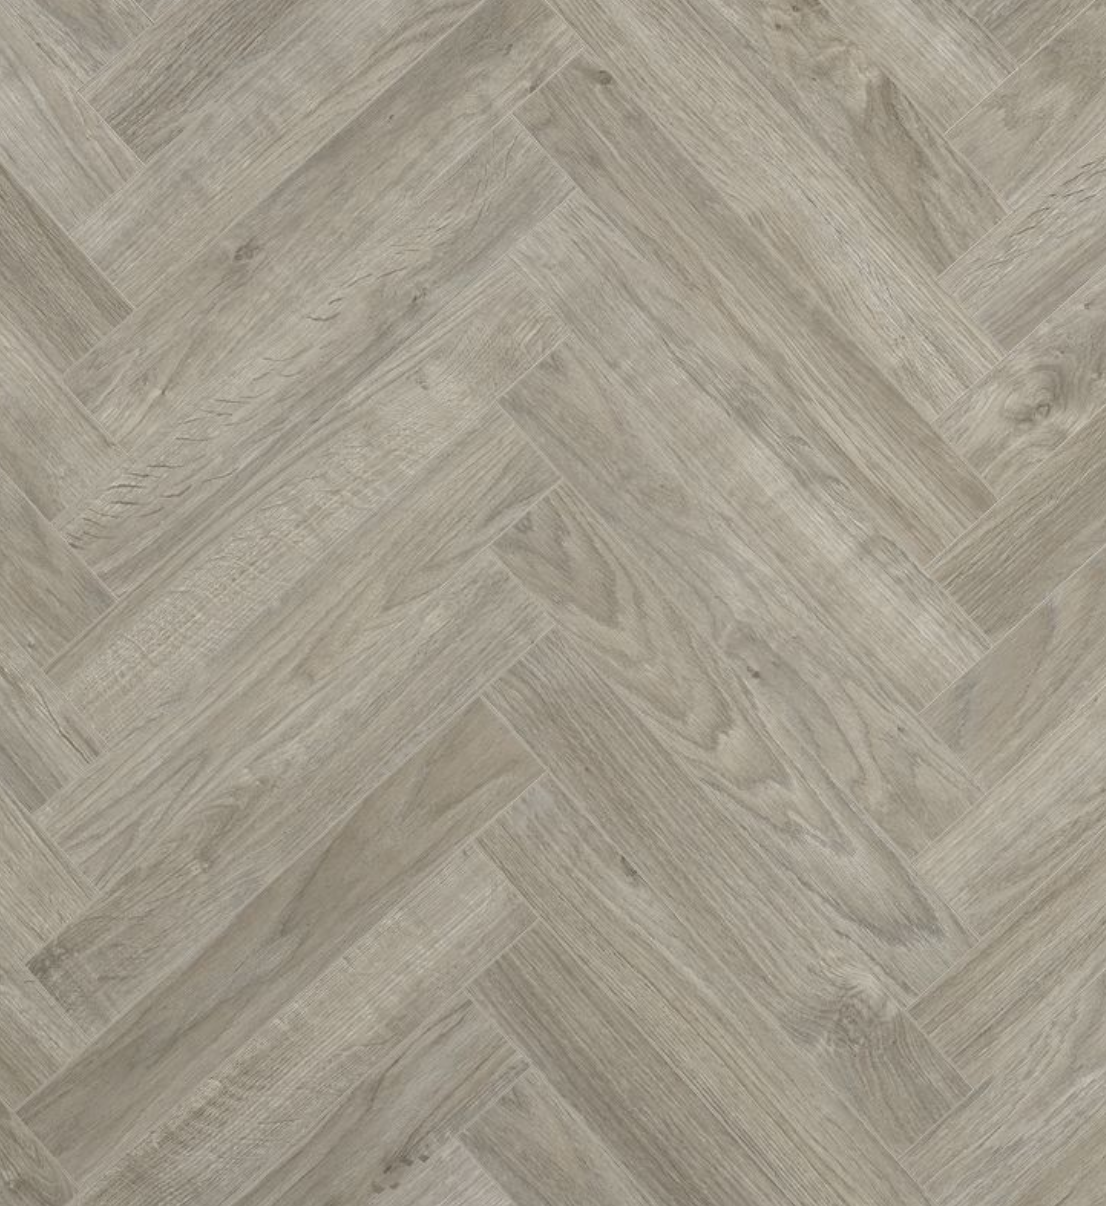 Berry Alloc Chateau Java Light Grey Parquet Herringbone Laminate Flooring